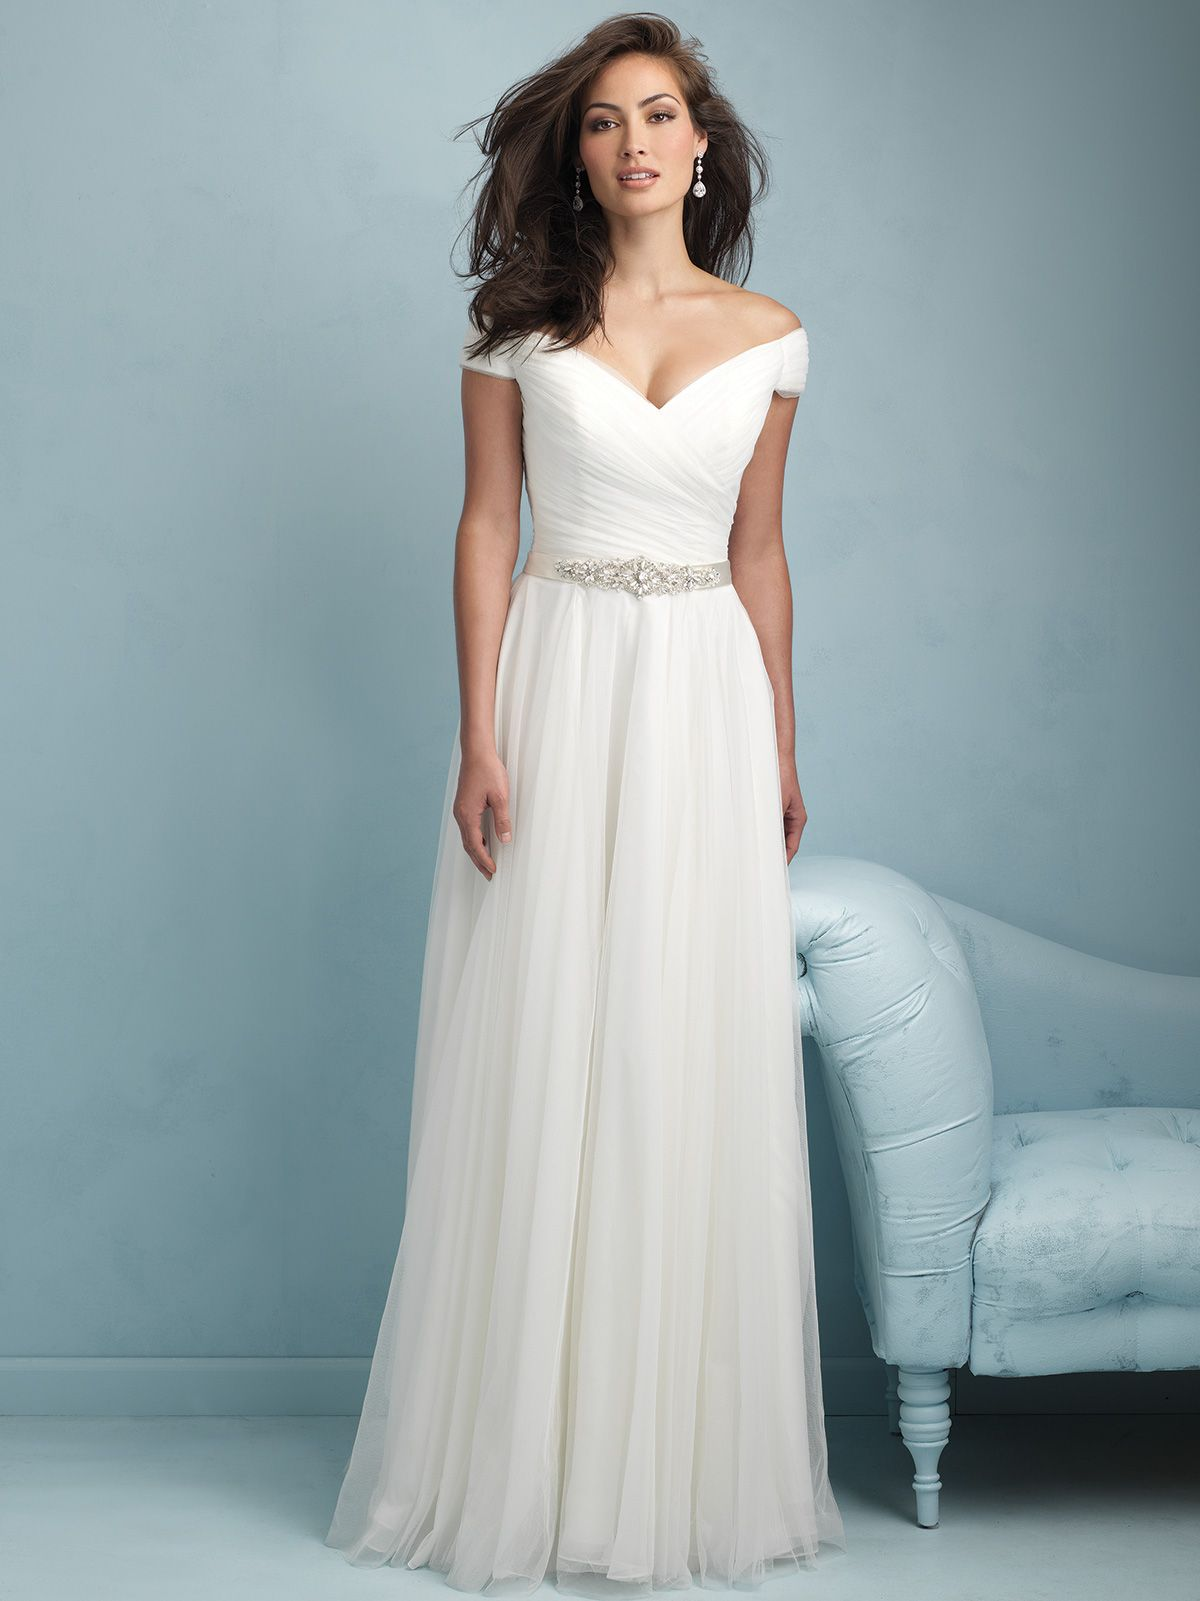 Fine Grecian Bridal Gowns Component - All Wedding Dresses ...